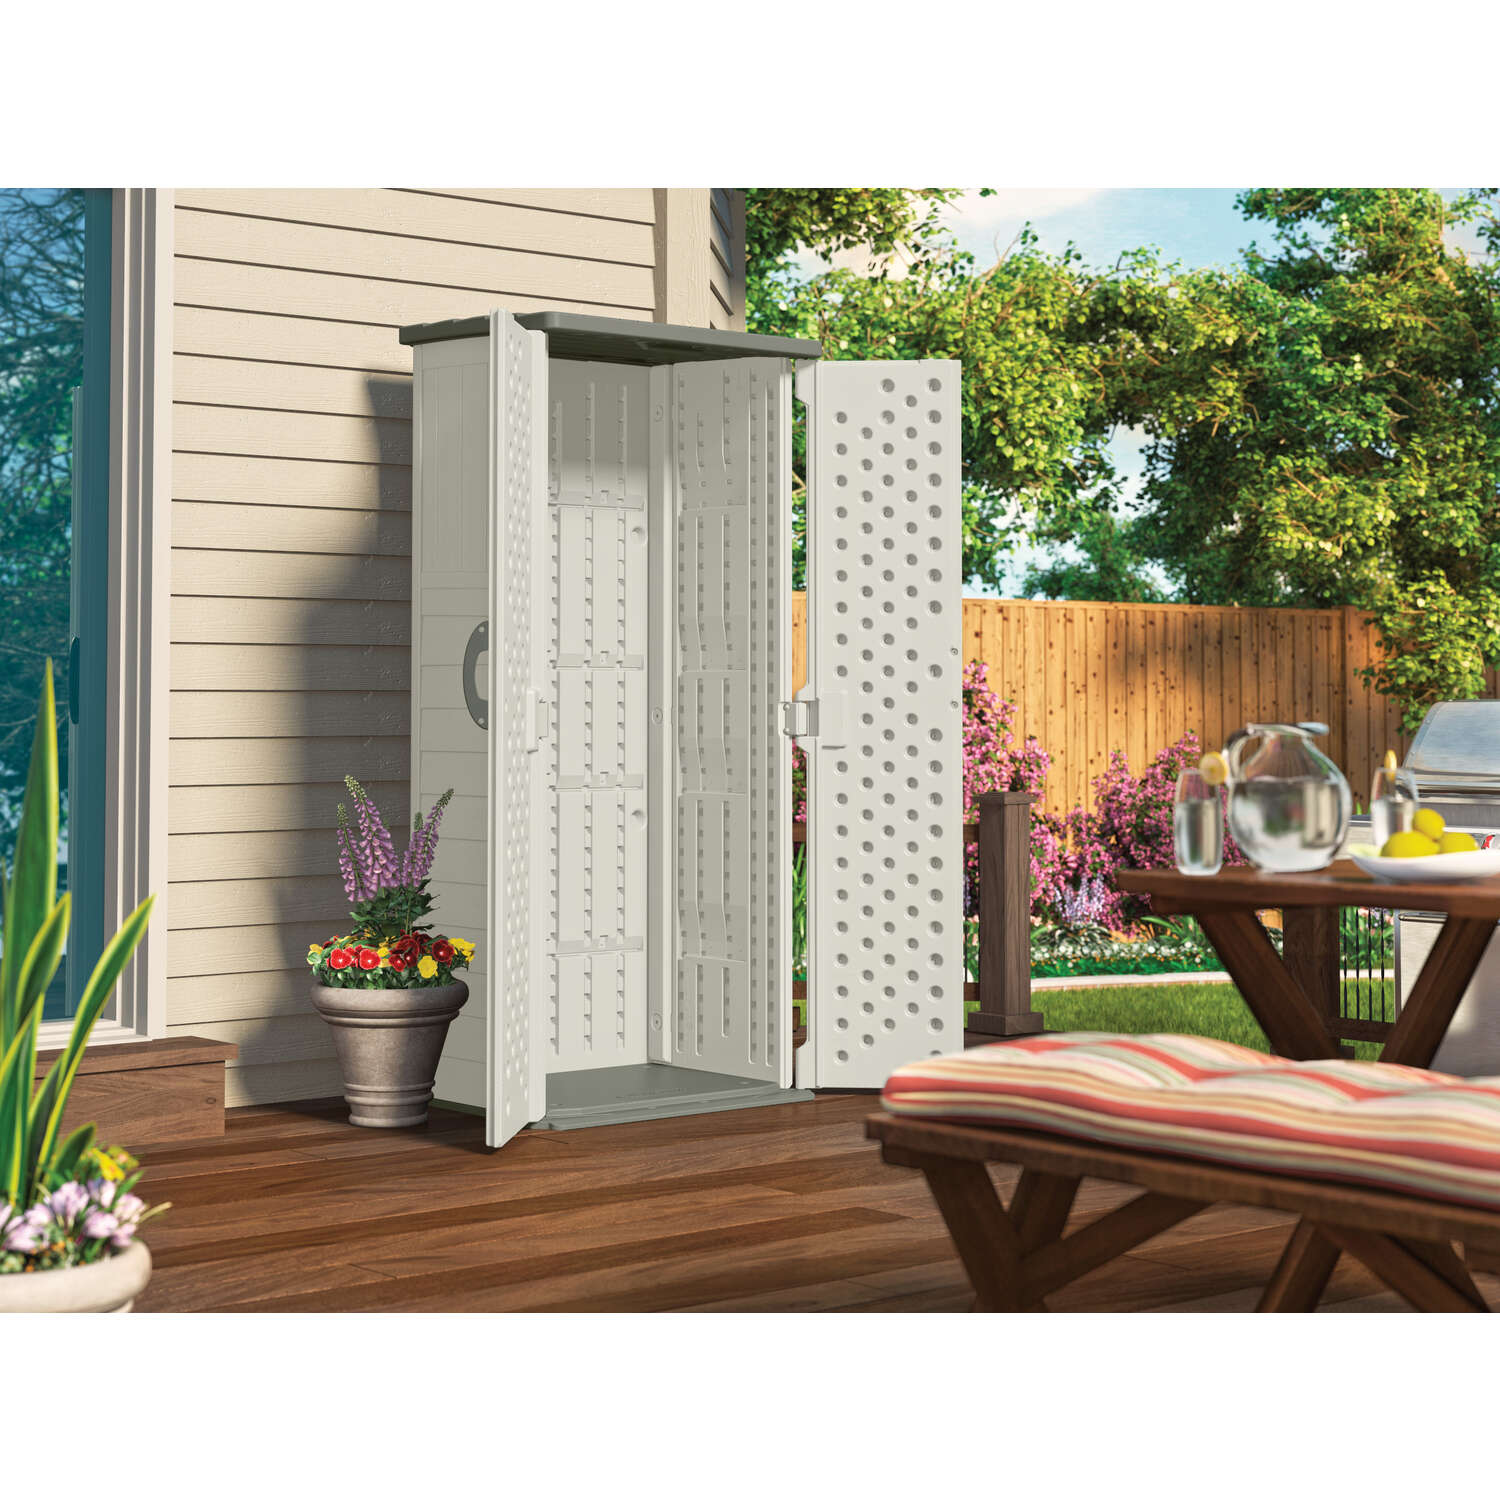 Suncast  6 ft. H x 2 ft. 8-1/4 in. W x 2 ft. 1-1/2 in. D Vanilla  Resin  Vertical Storage Shed